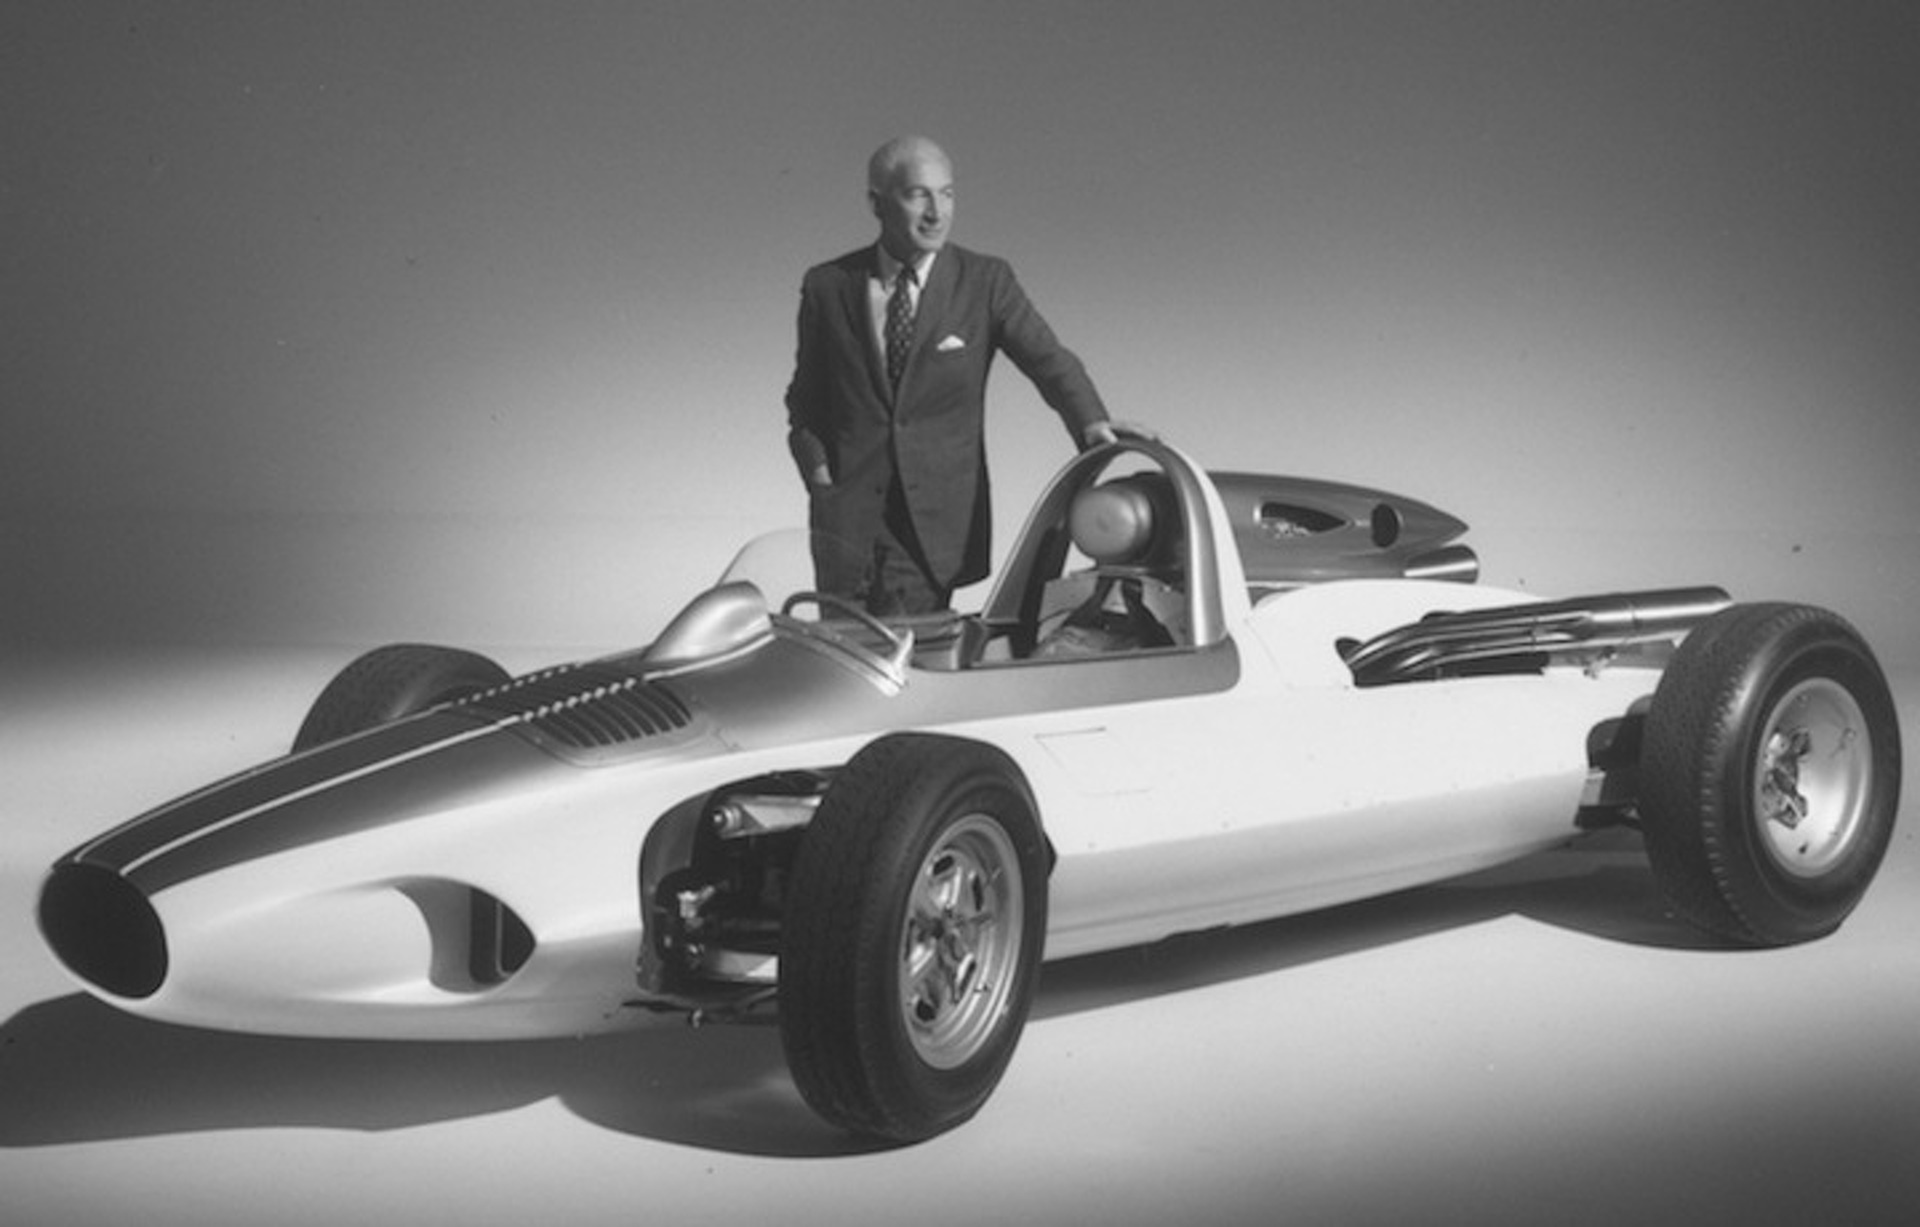 Zora Arkus-Duntov: Father of the Corvette